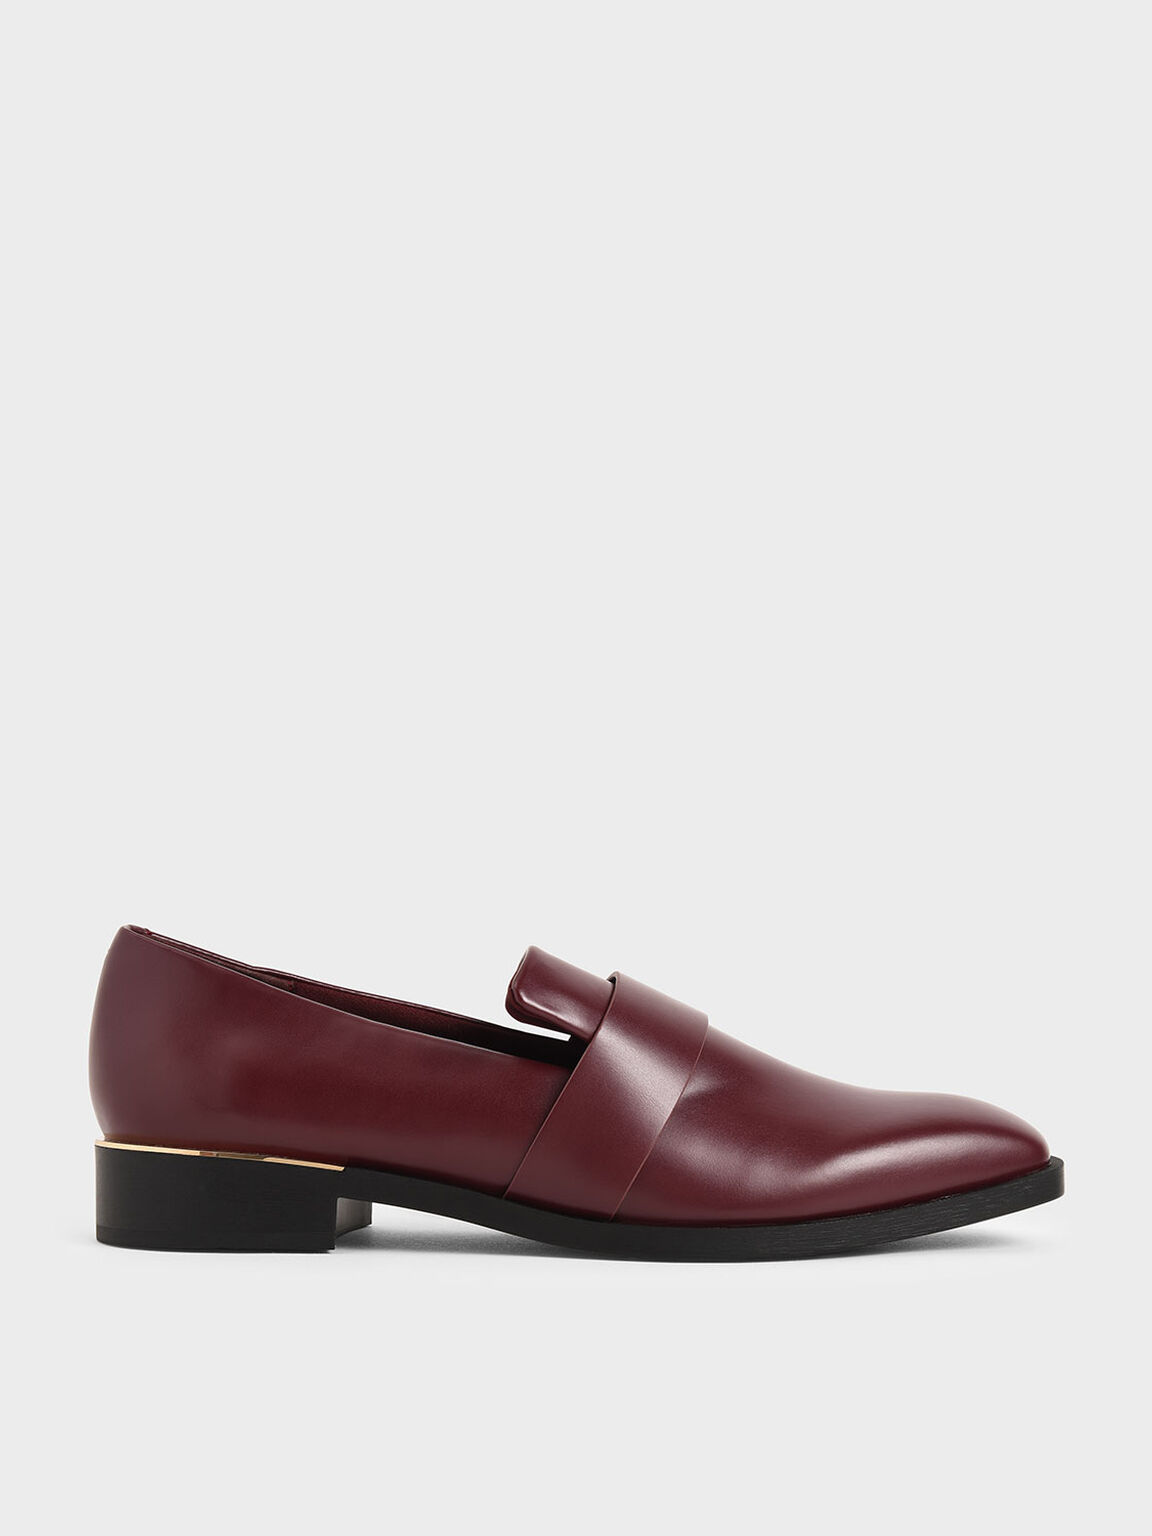 Square Toe Penny Loafers, Burgundy, hi-res